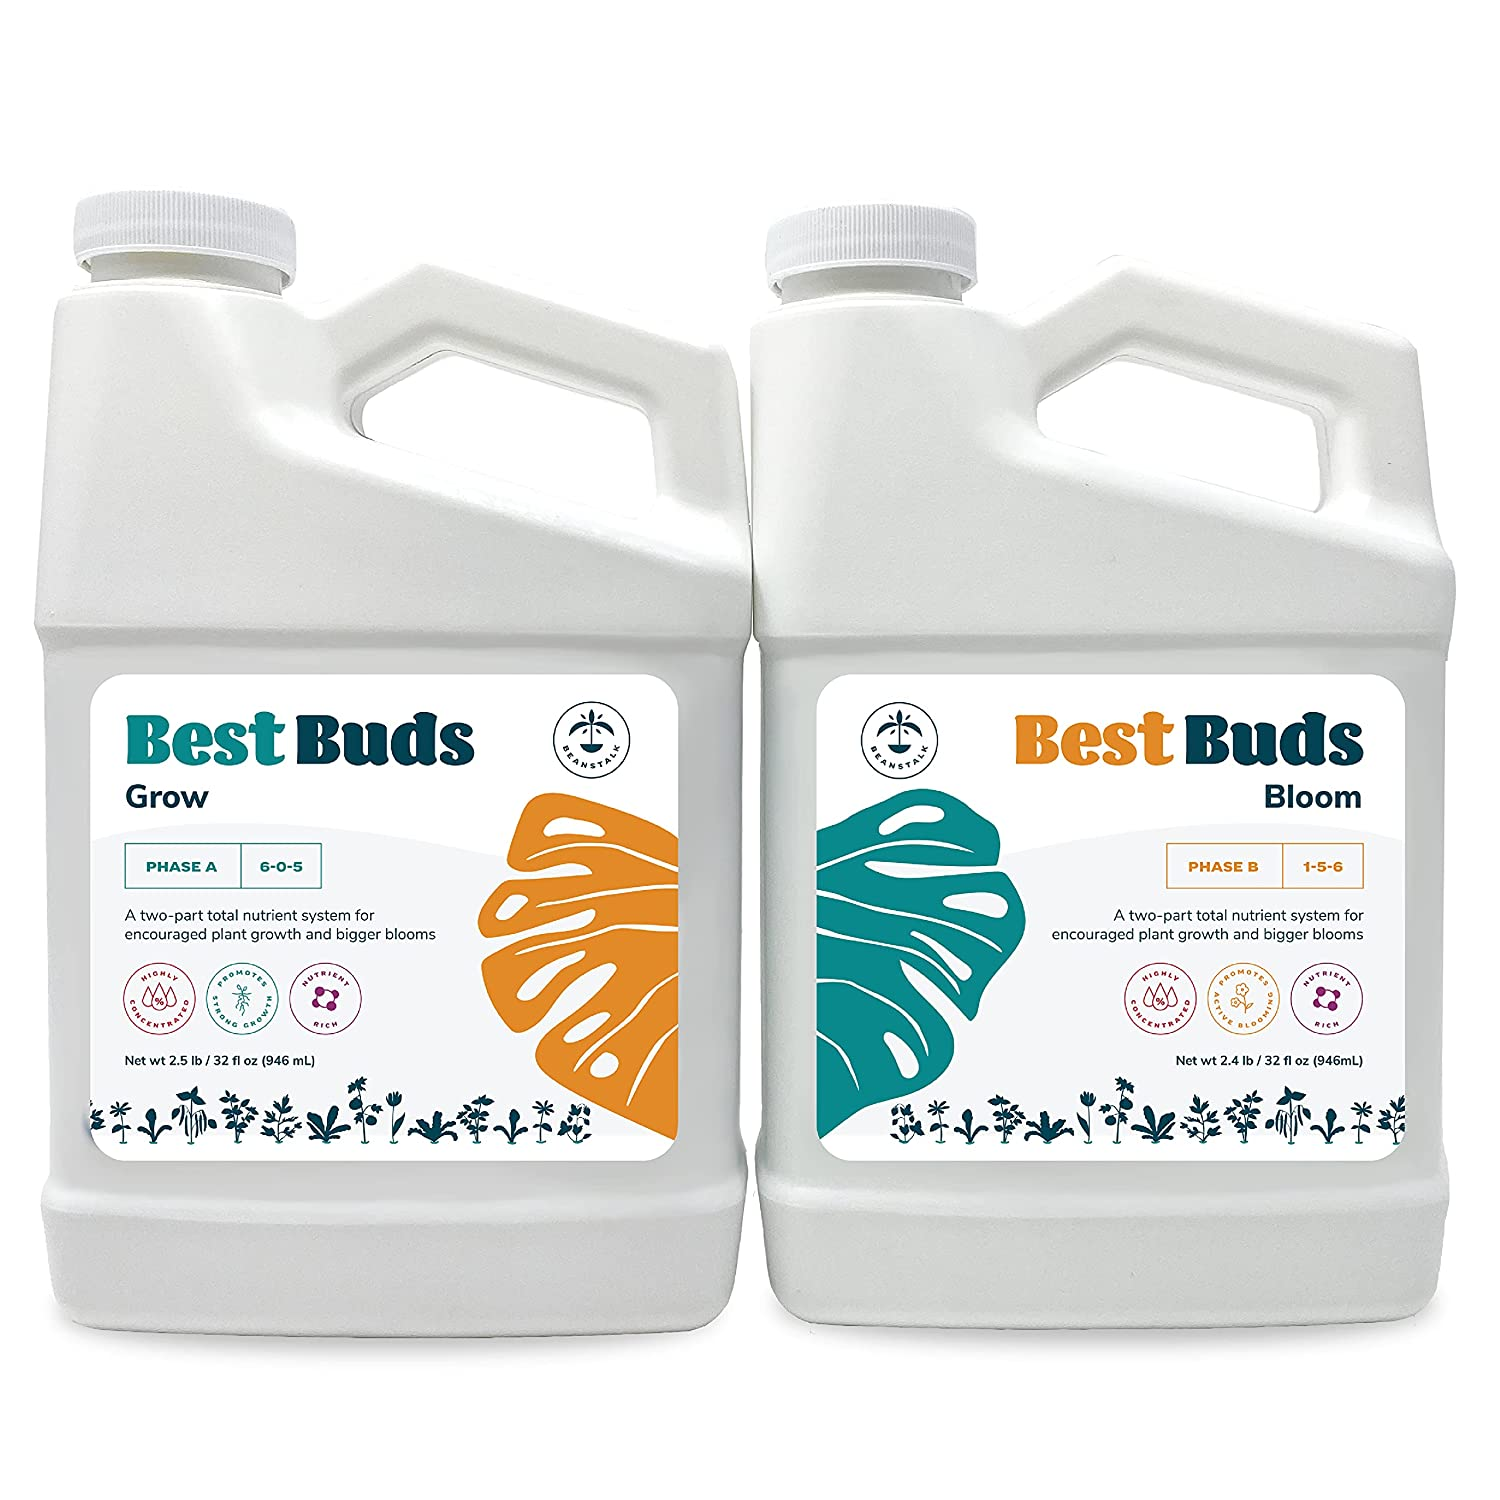 Hydroponic Nutrients - Best Buds Hydroponic Plant Food (Pack of 2- 36 oz Bottles) by Beanstalk, Nutrients for Hydroponic Plants, Hydroponic Garden Nutrients, Plant Nutrients